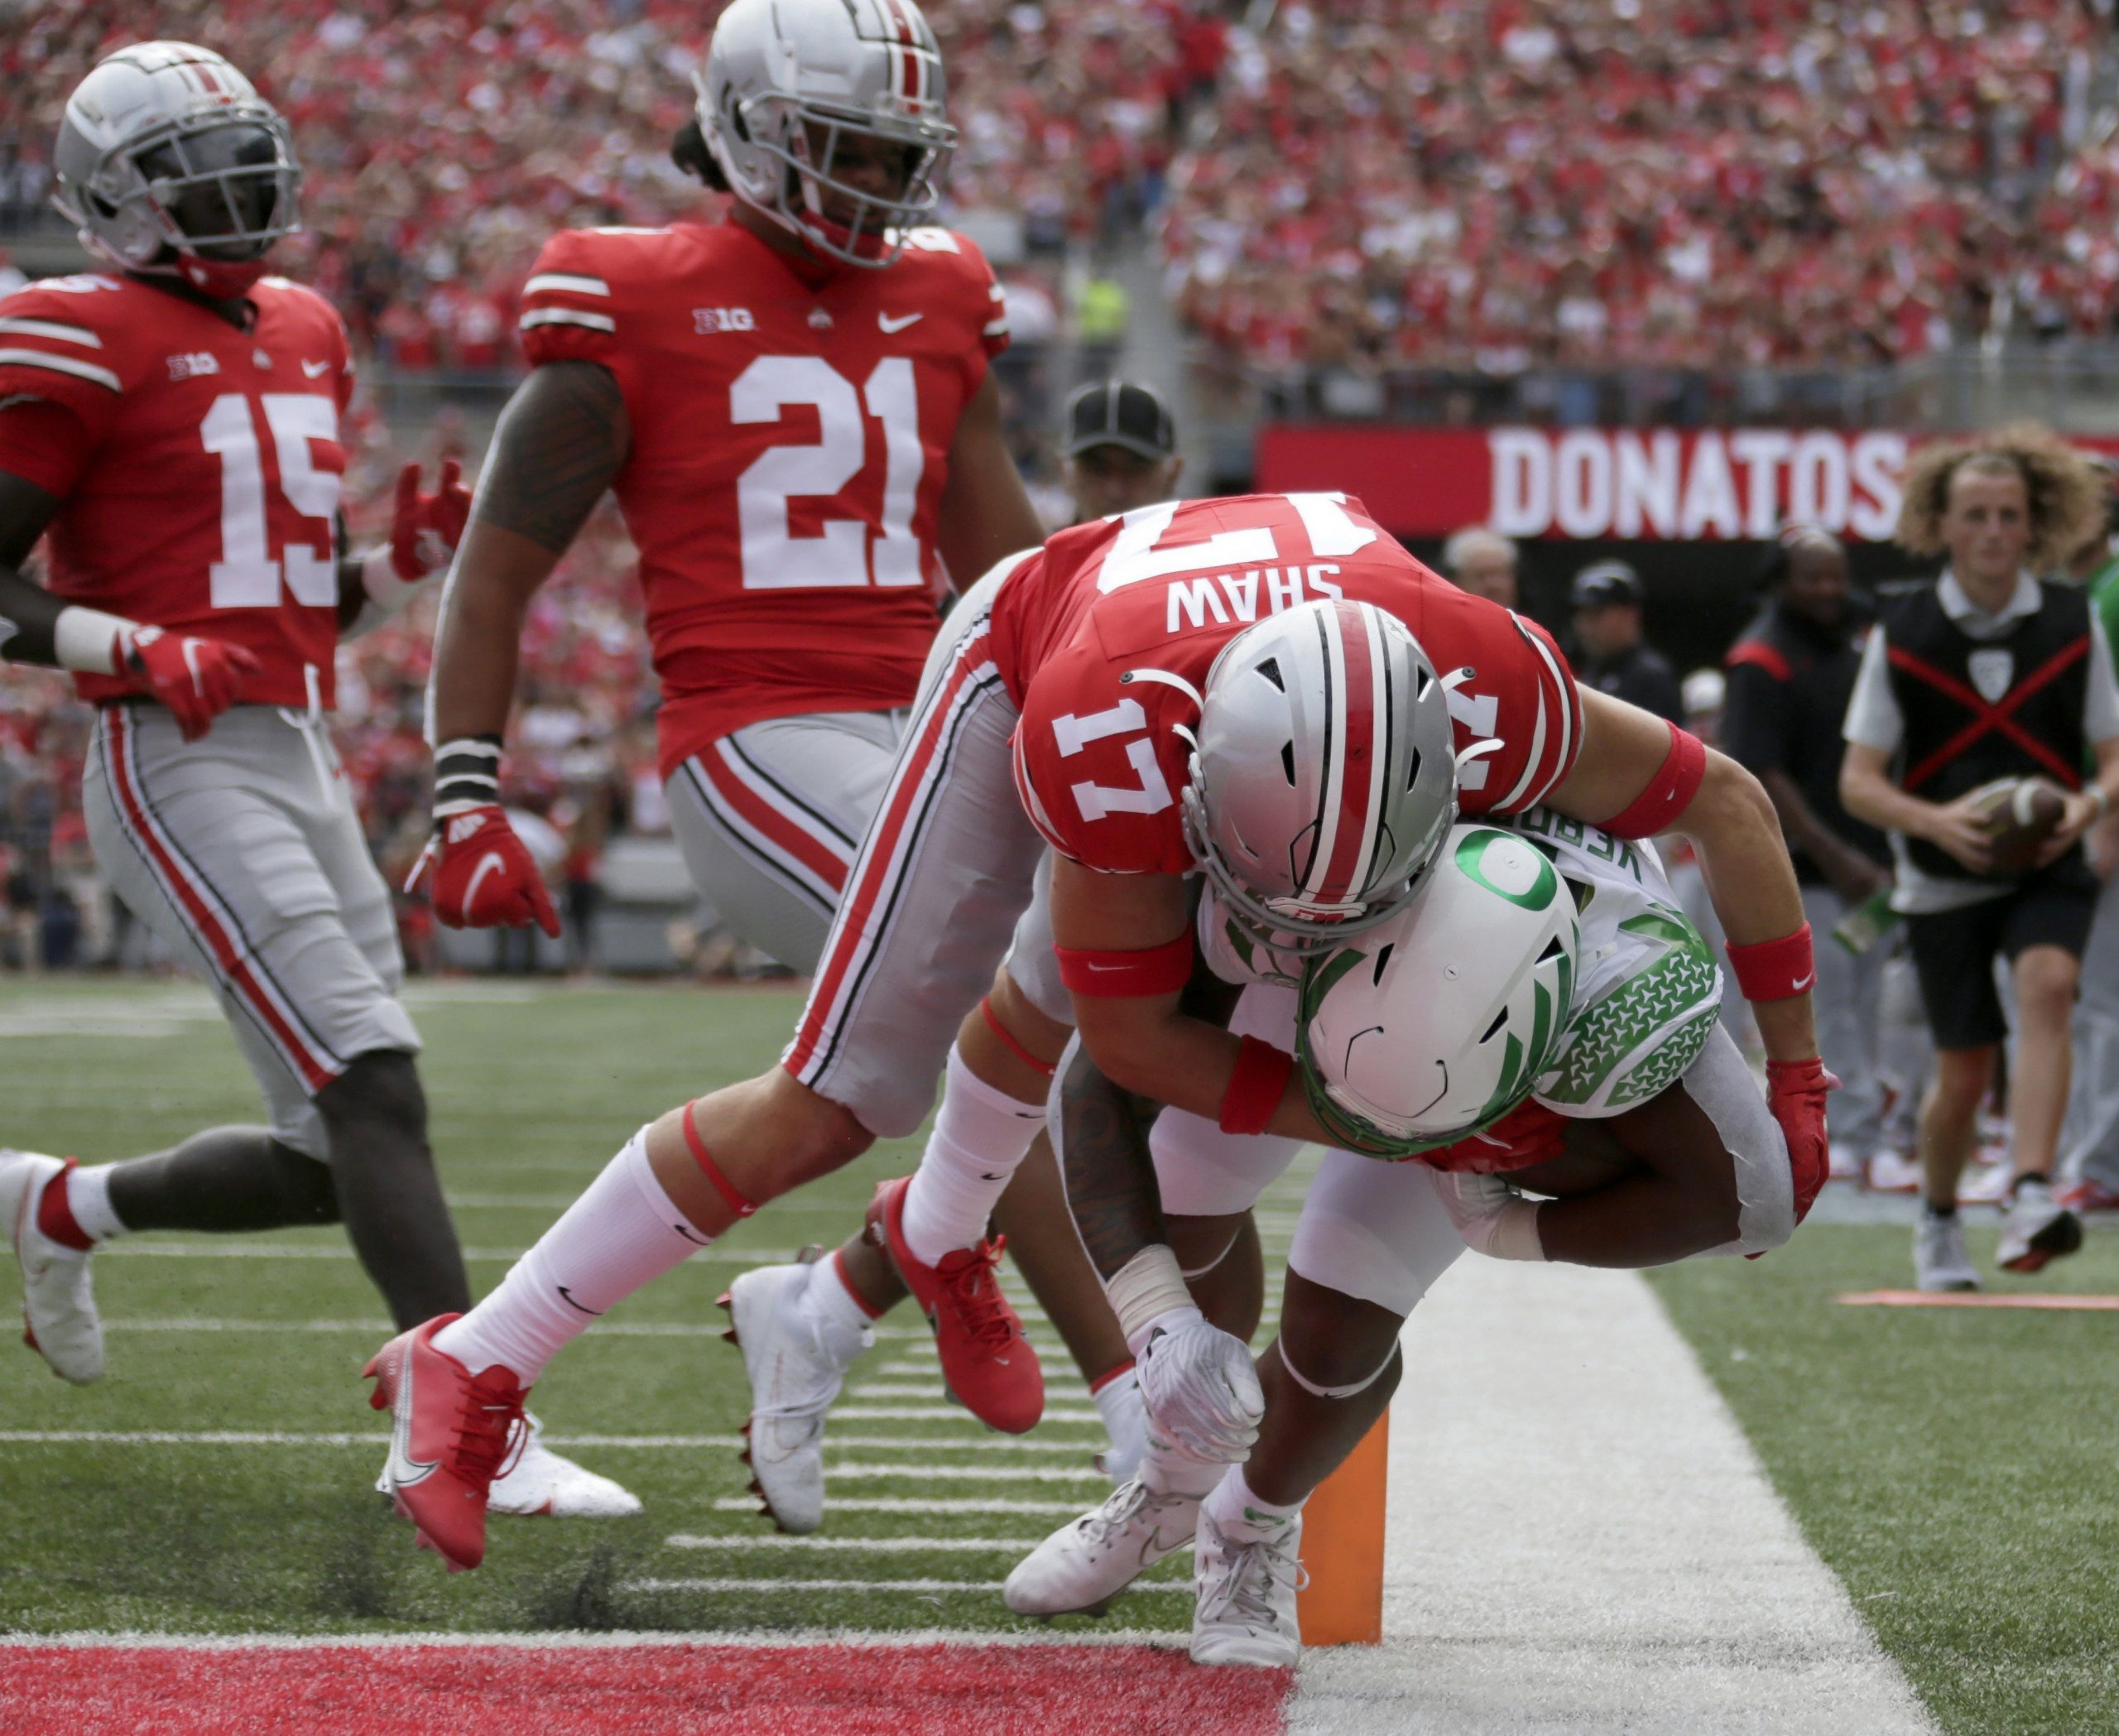 CFB Notes And Reactions From Week Two